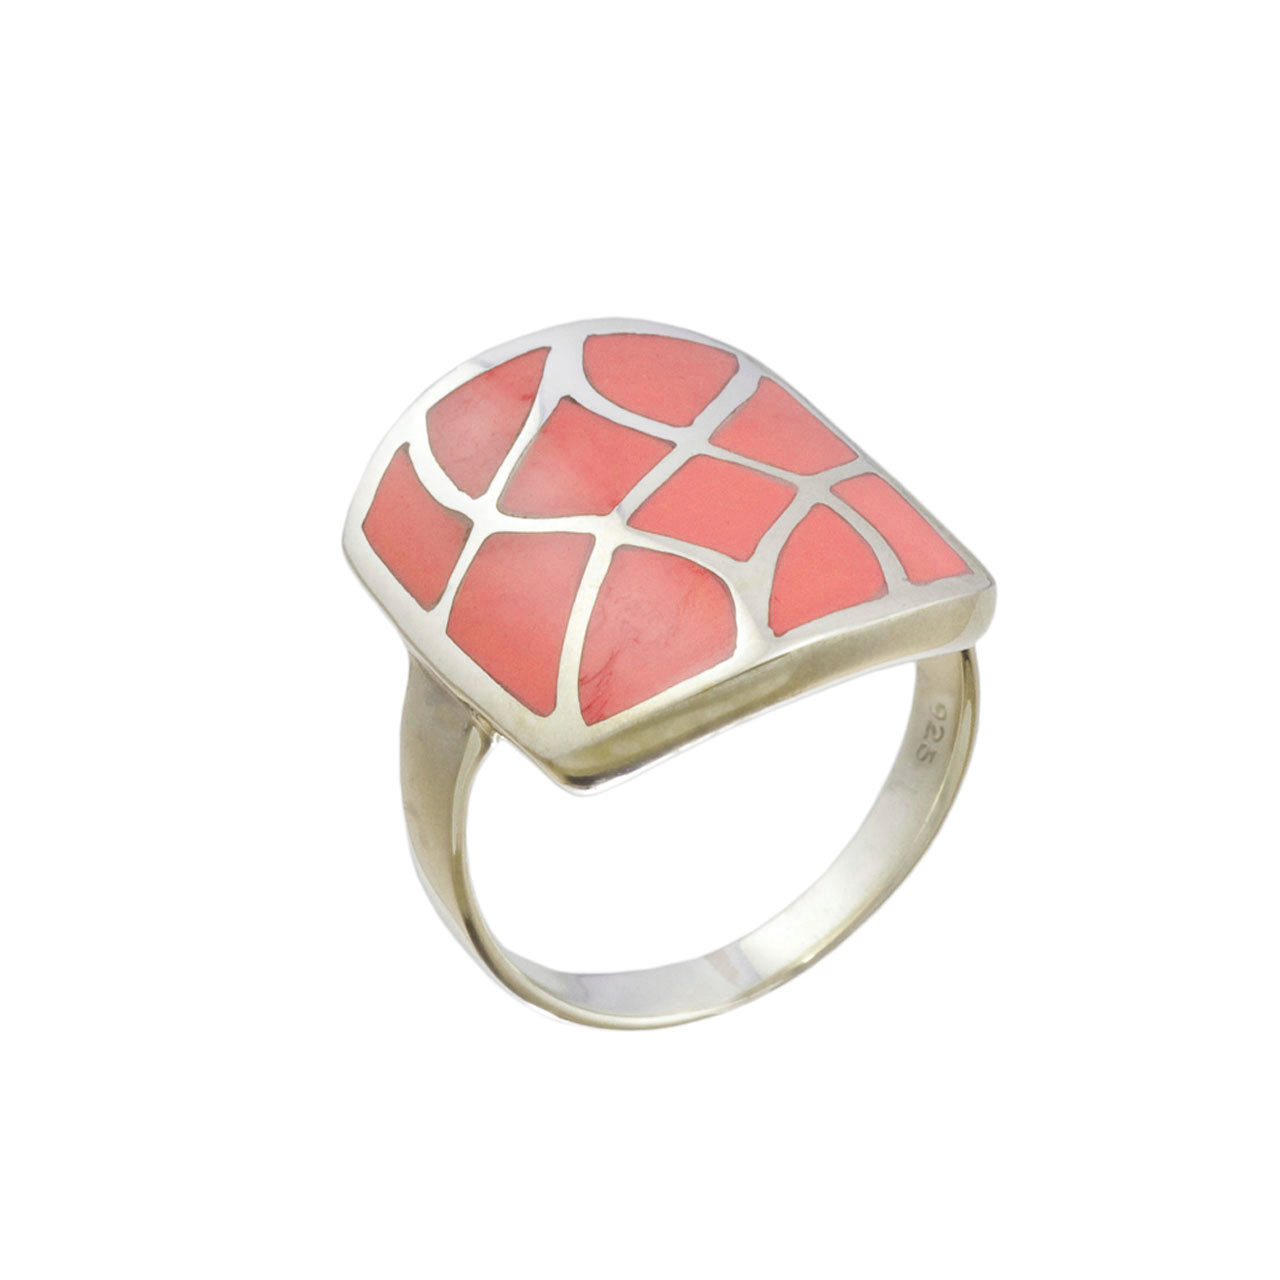 Coral silver ring on sale 1